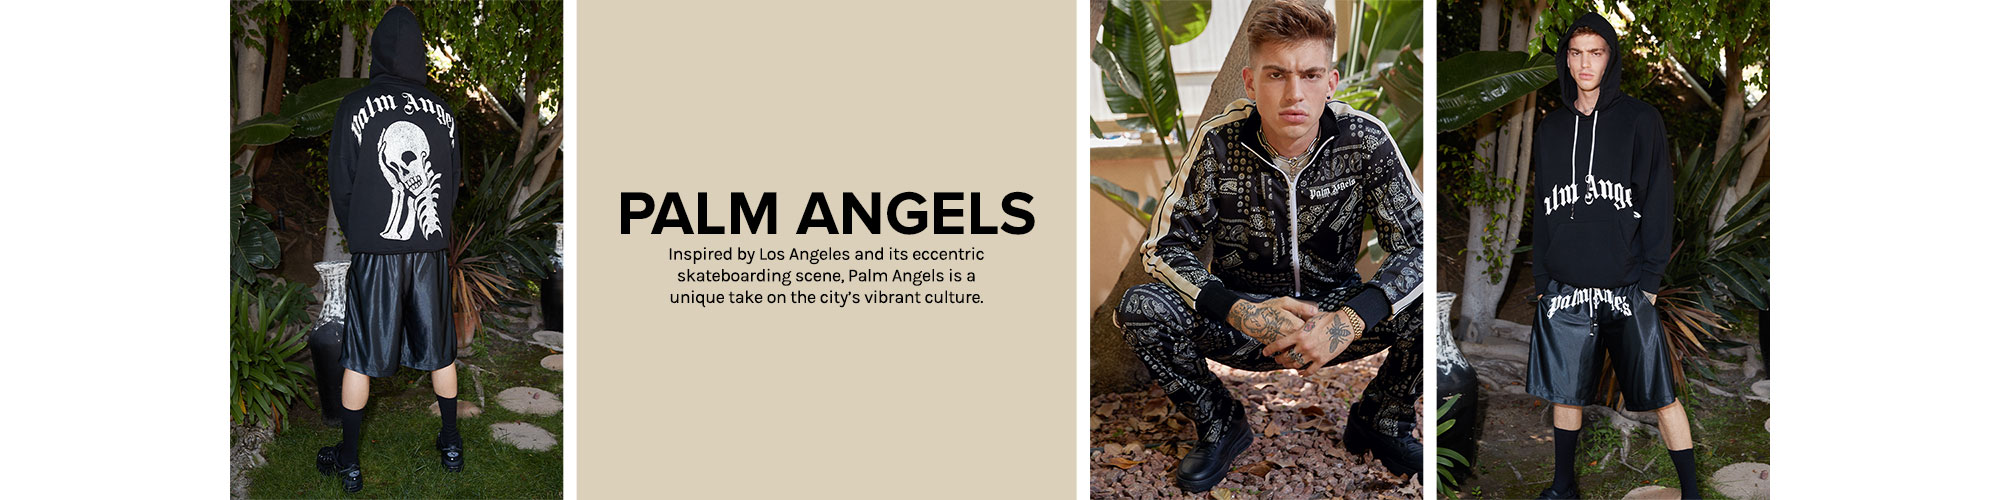 Palm Angels. Inspired by Los Angeles and it\u2019s eccentric skateboarding scene, Palm Angels is a unique take on the city\u2019s vibrant culture. Shop Now.